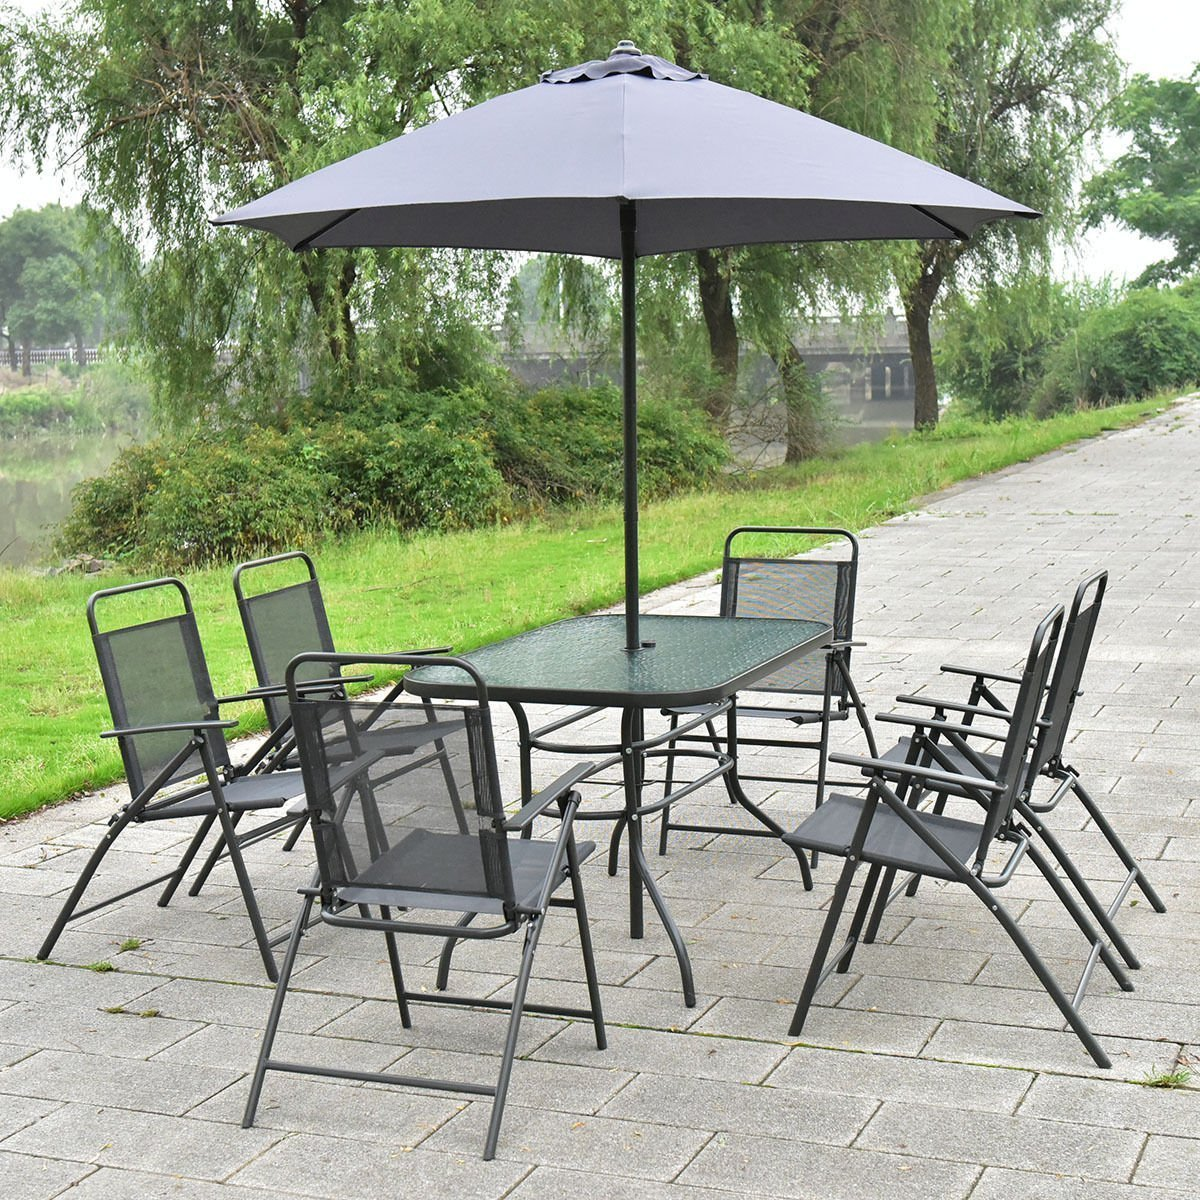 amazoncom giantex 8pcs patio garden set furniture 6 folding chairs table with umbrella gray new garden outdoor - Garden Furniture 6 Seats